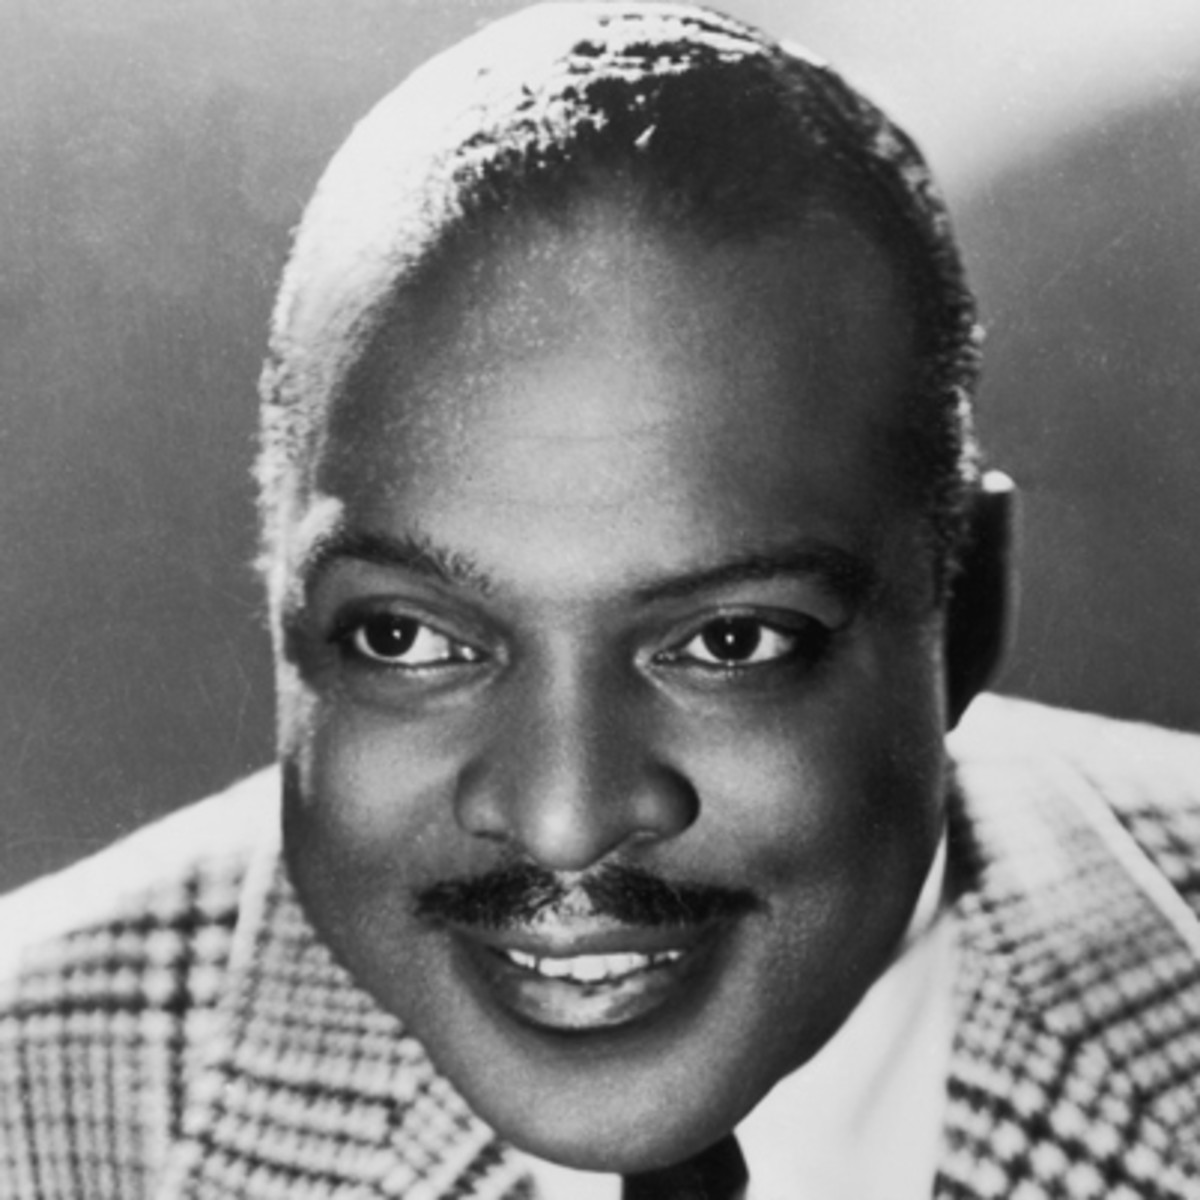 Count Basie - Songwriter, Pianist - Biography